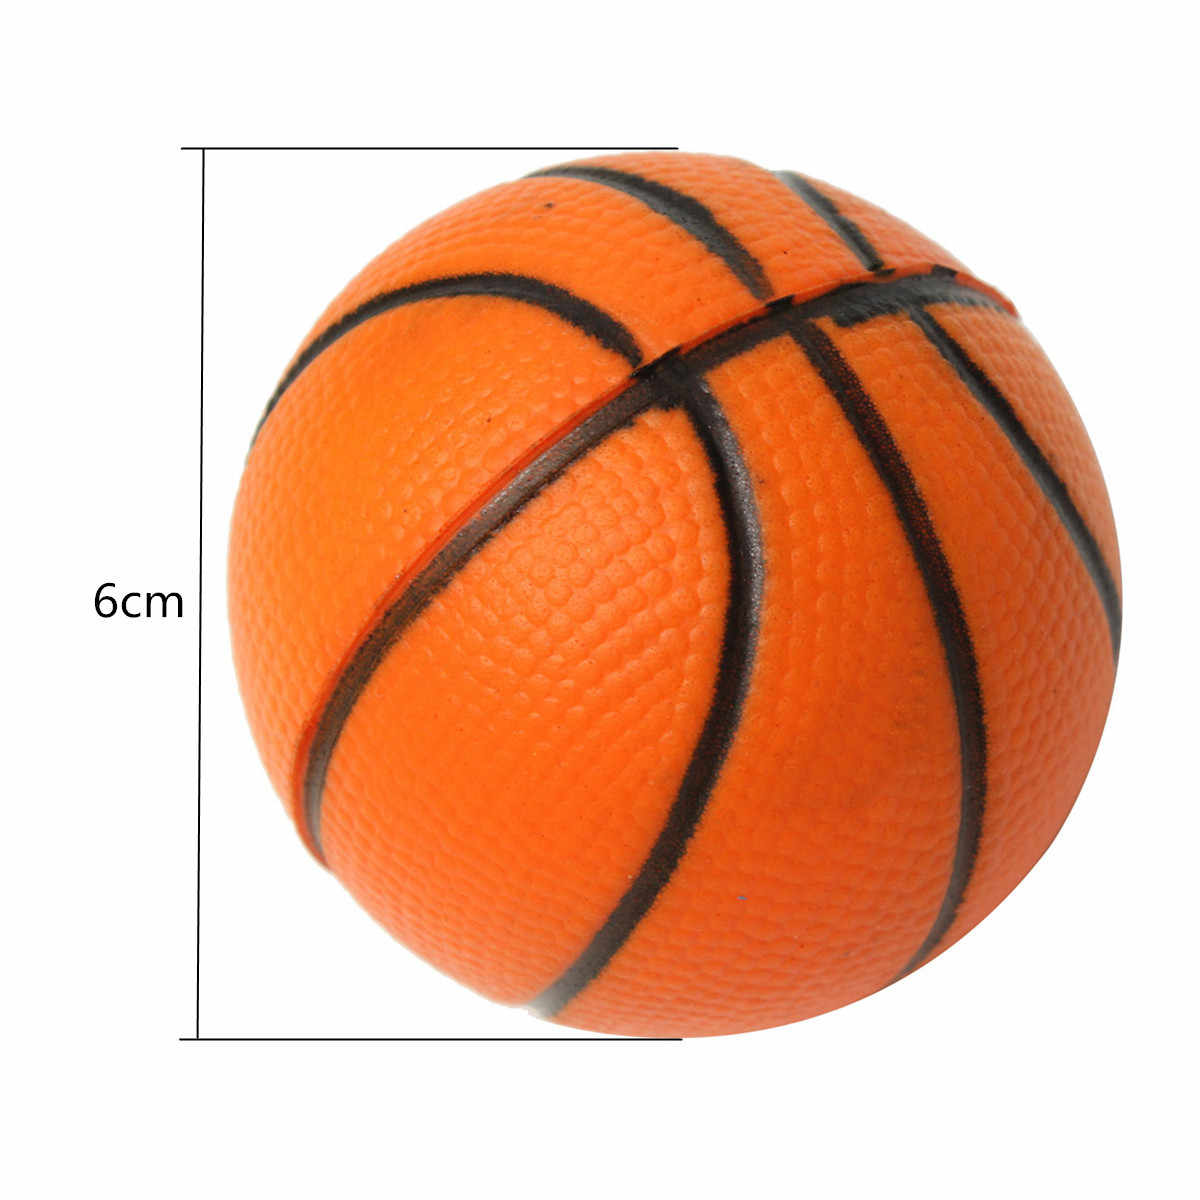 Soft Foam Ball Wrist Exercise Stress Relief Squeeze Tennis Ball/Basketball/Football Gift Toy Fitness Balls 6CM D Toy Balls